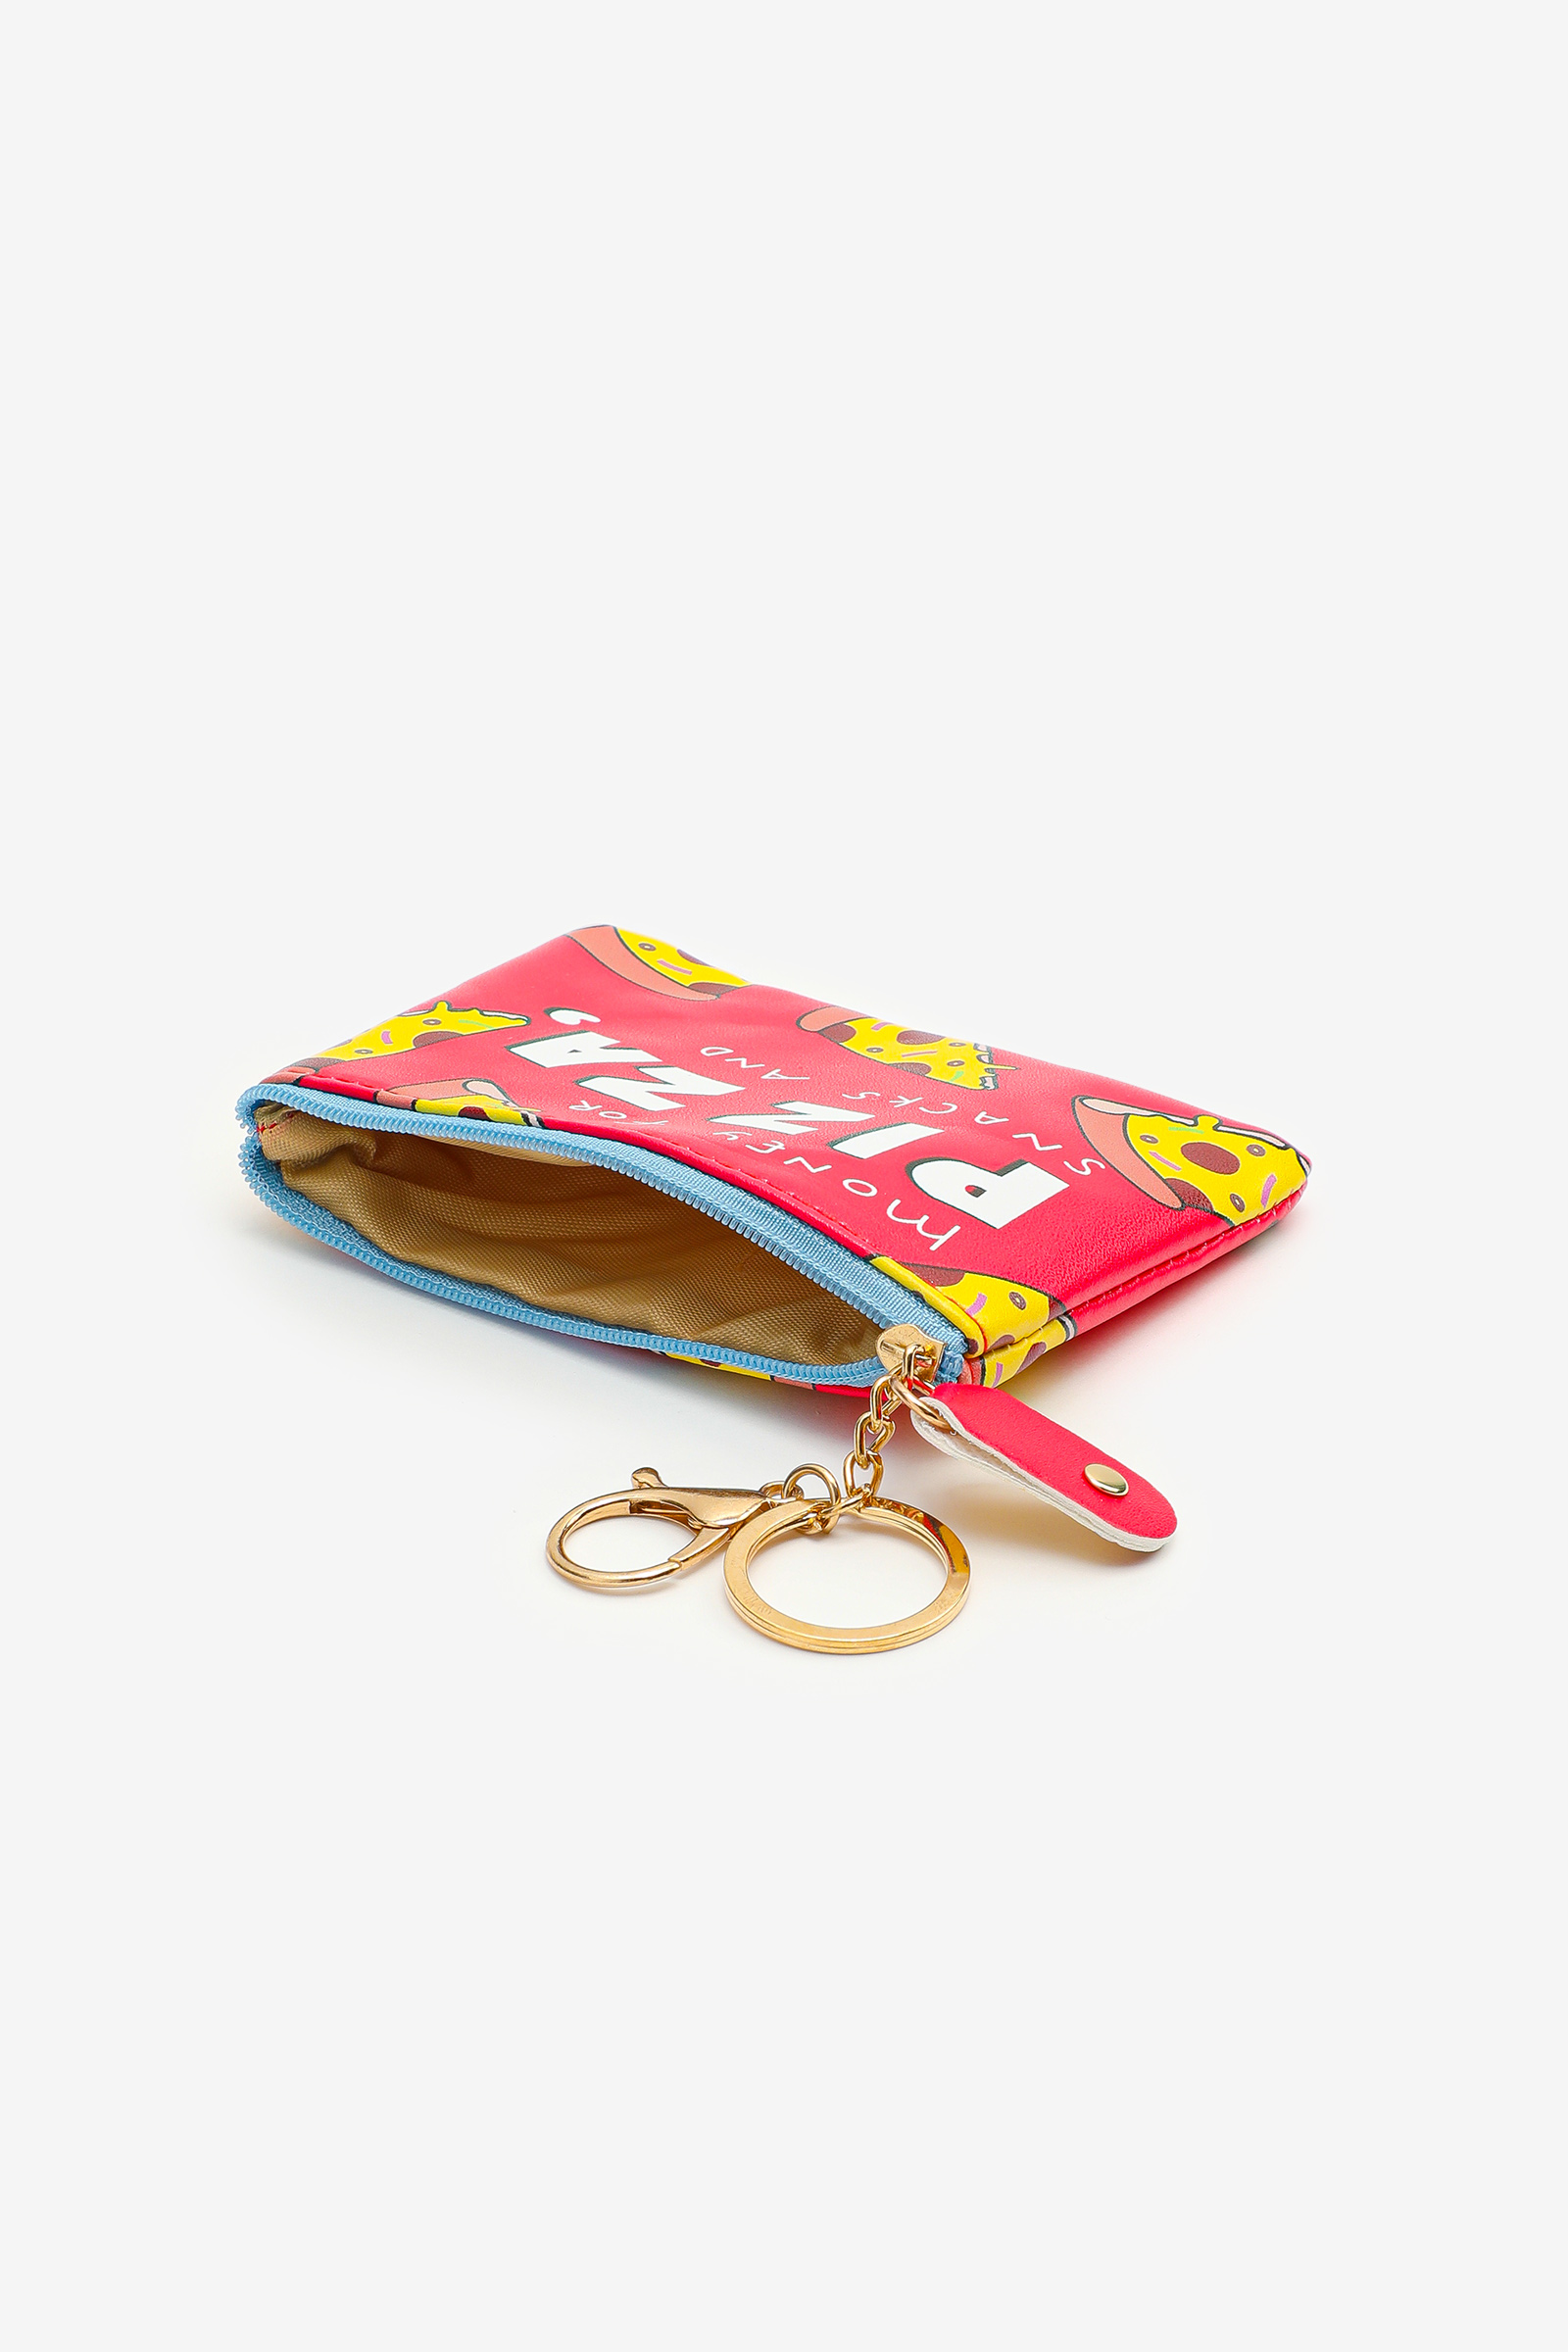 Pizza Print Coin Purse for Girls